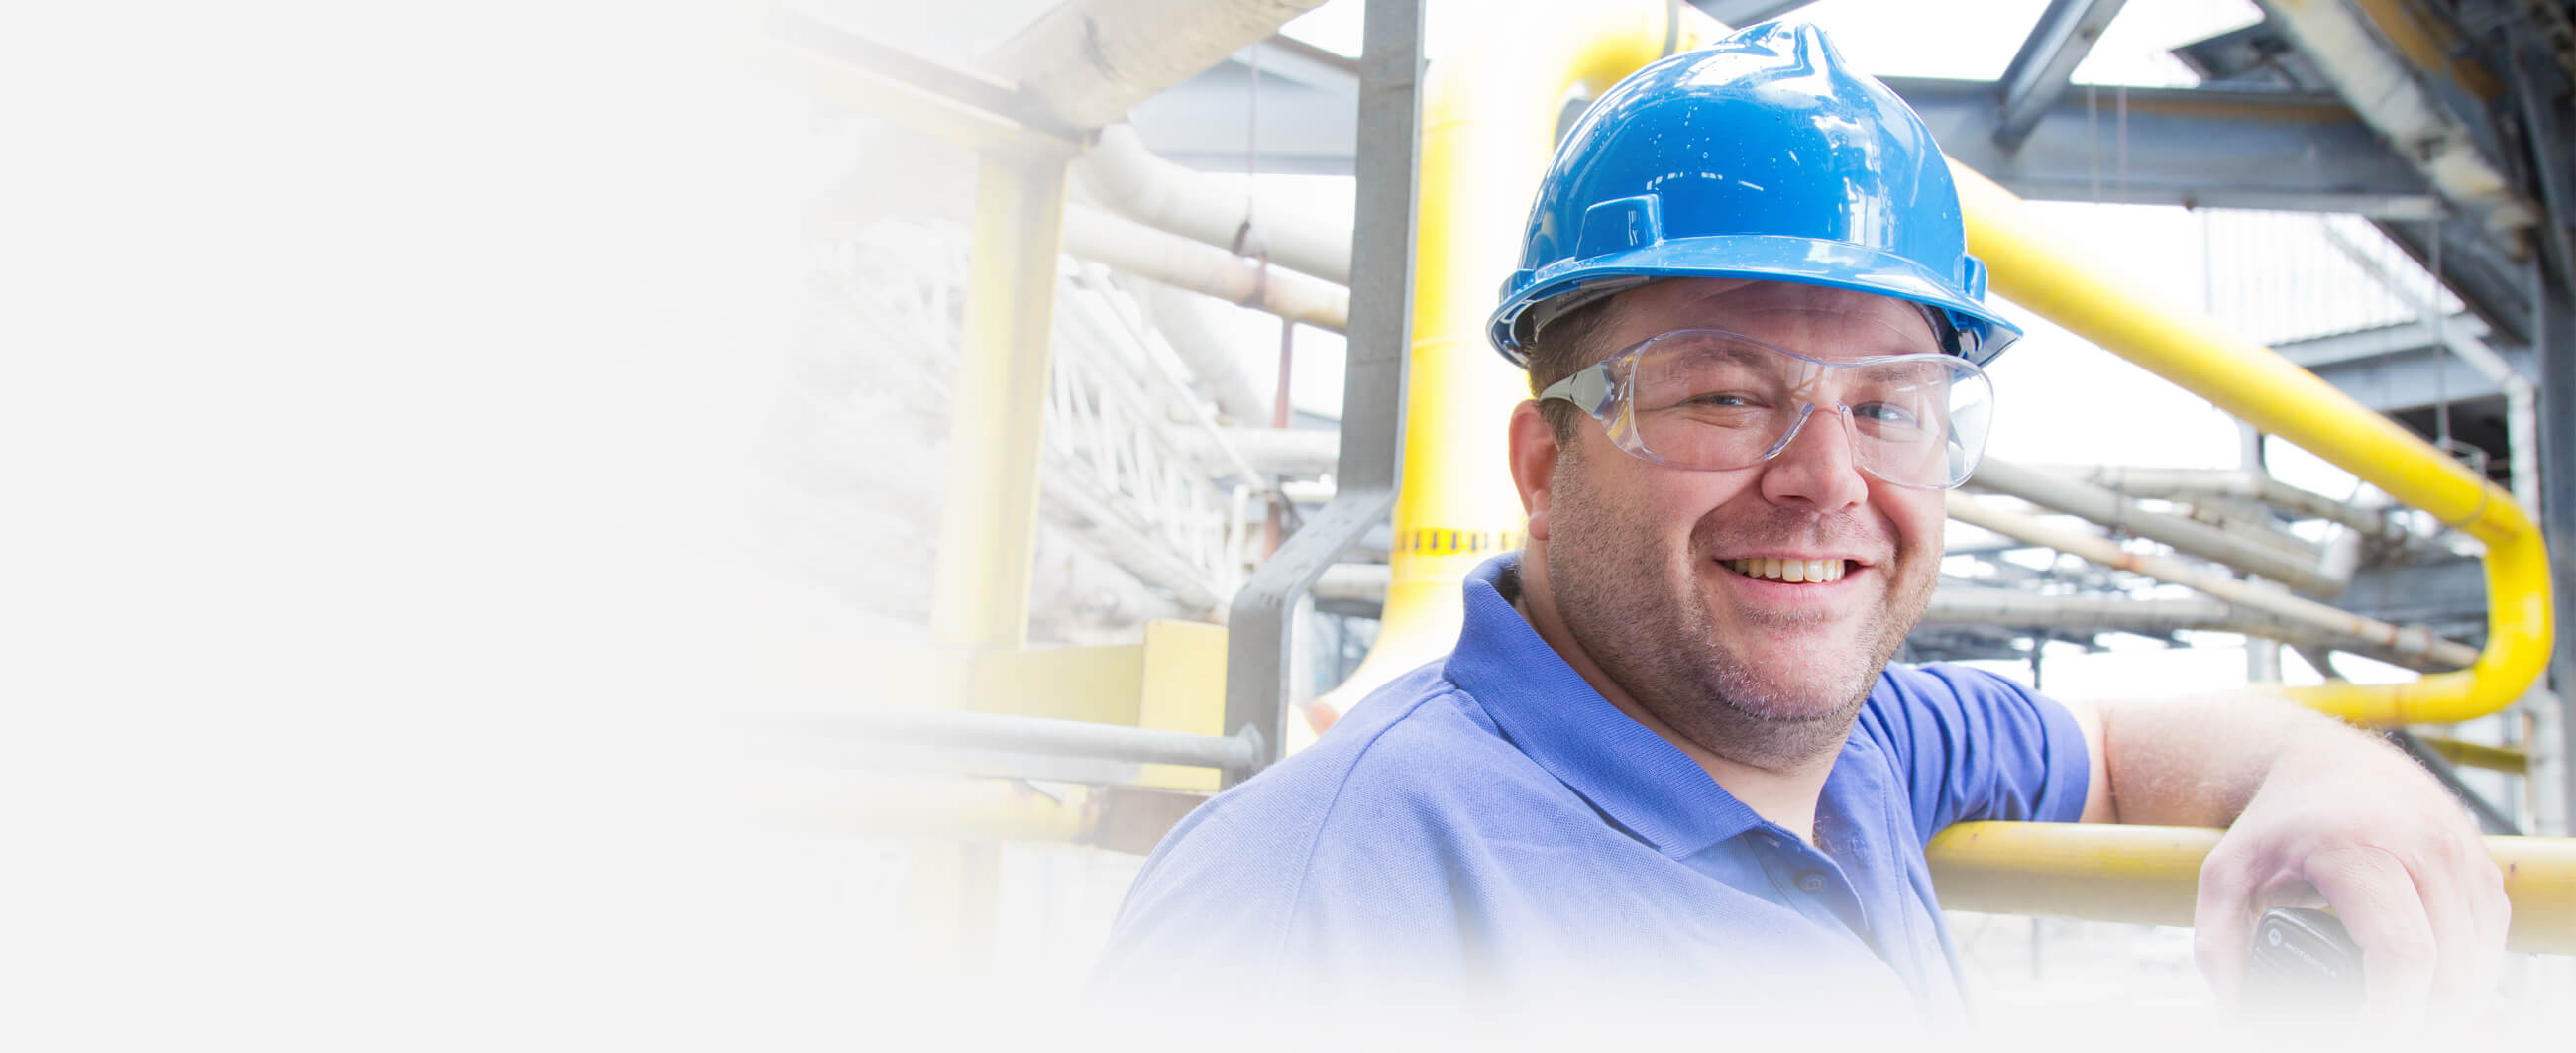 An employee in a blue hard hat and blue shirt.